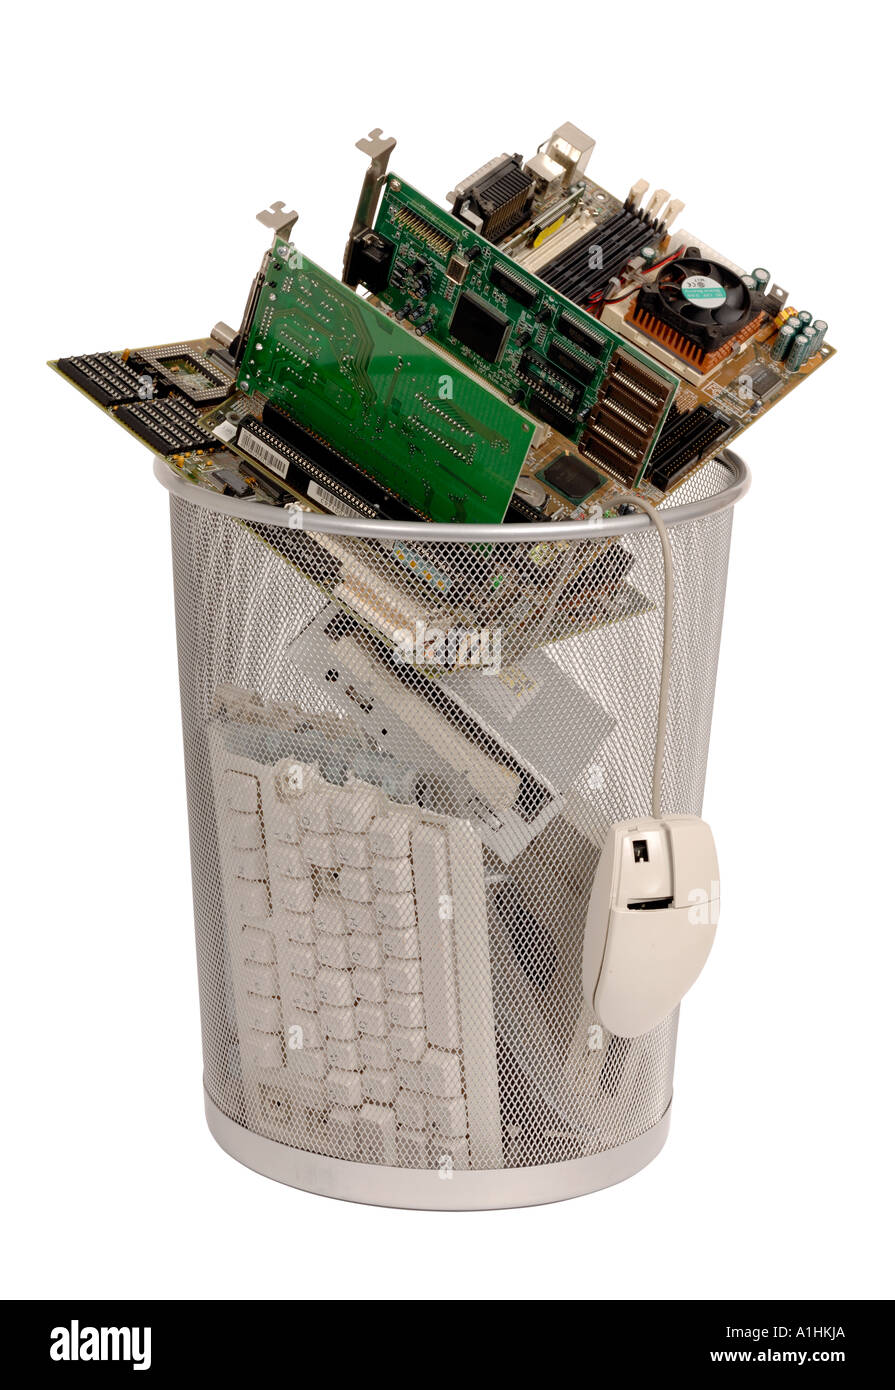 Bin full of old computer parts - Stock Image